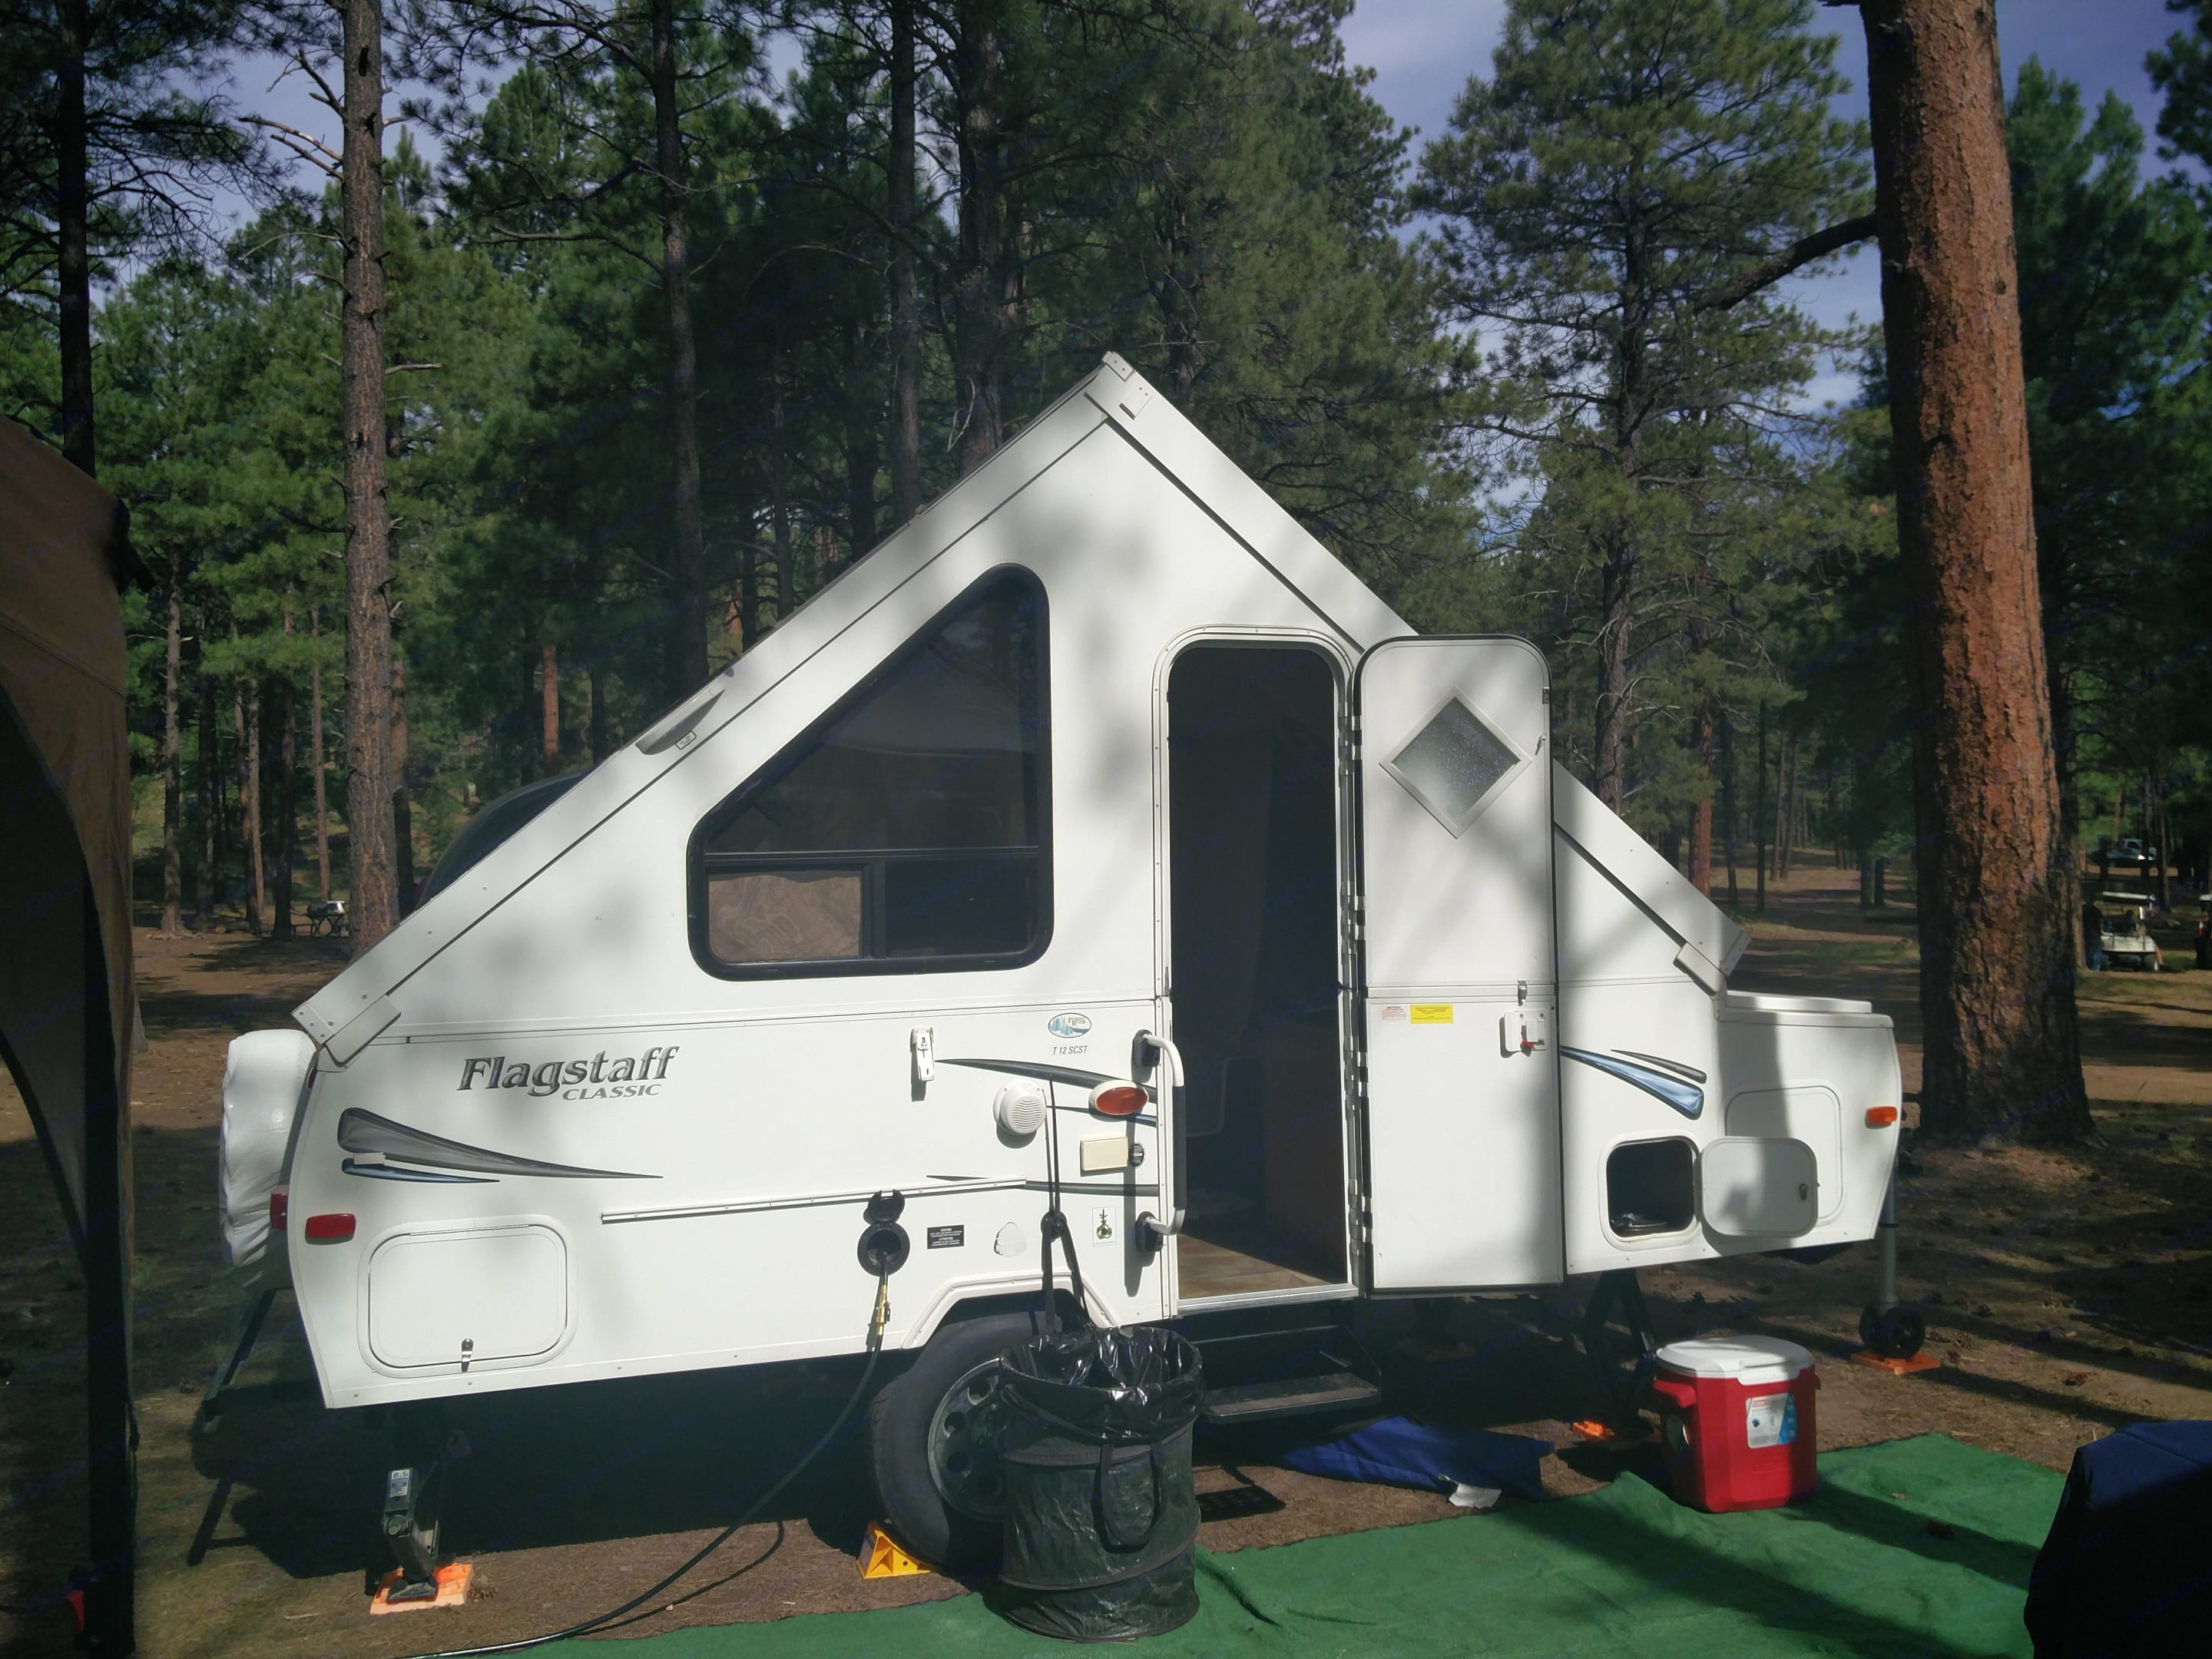 All setup camping pic in Flagstaff AZ. Forest River Flagstaff 2013